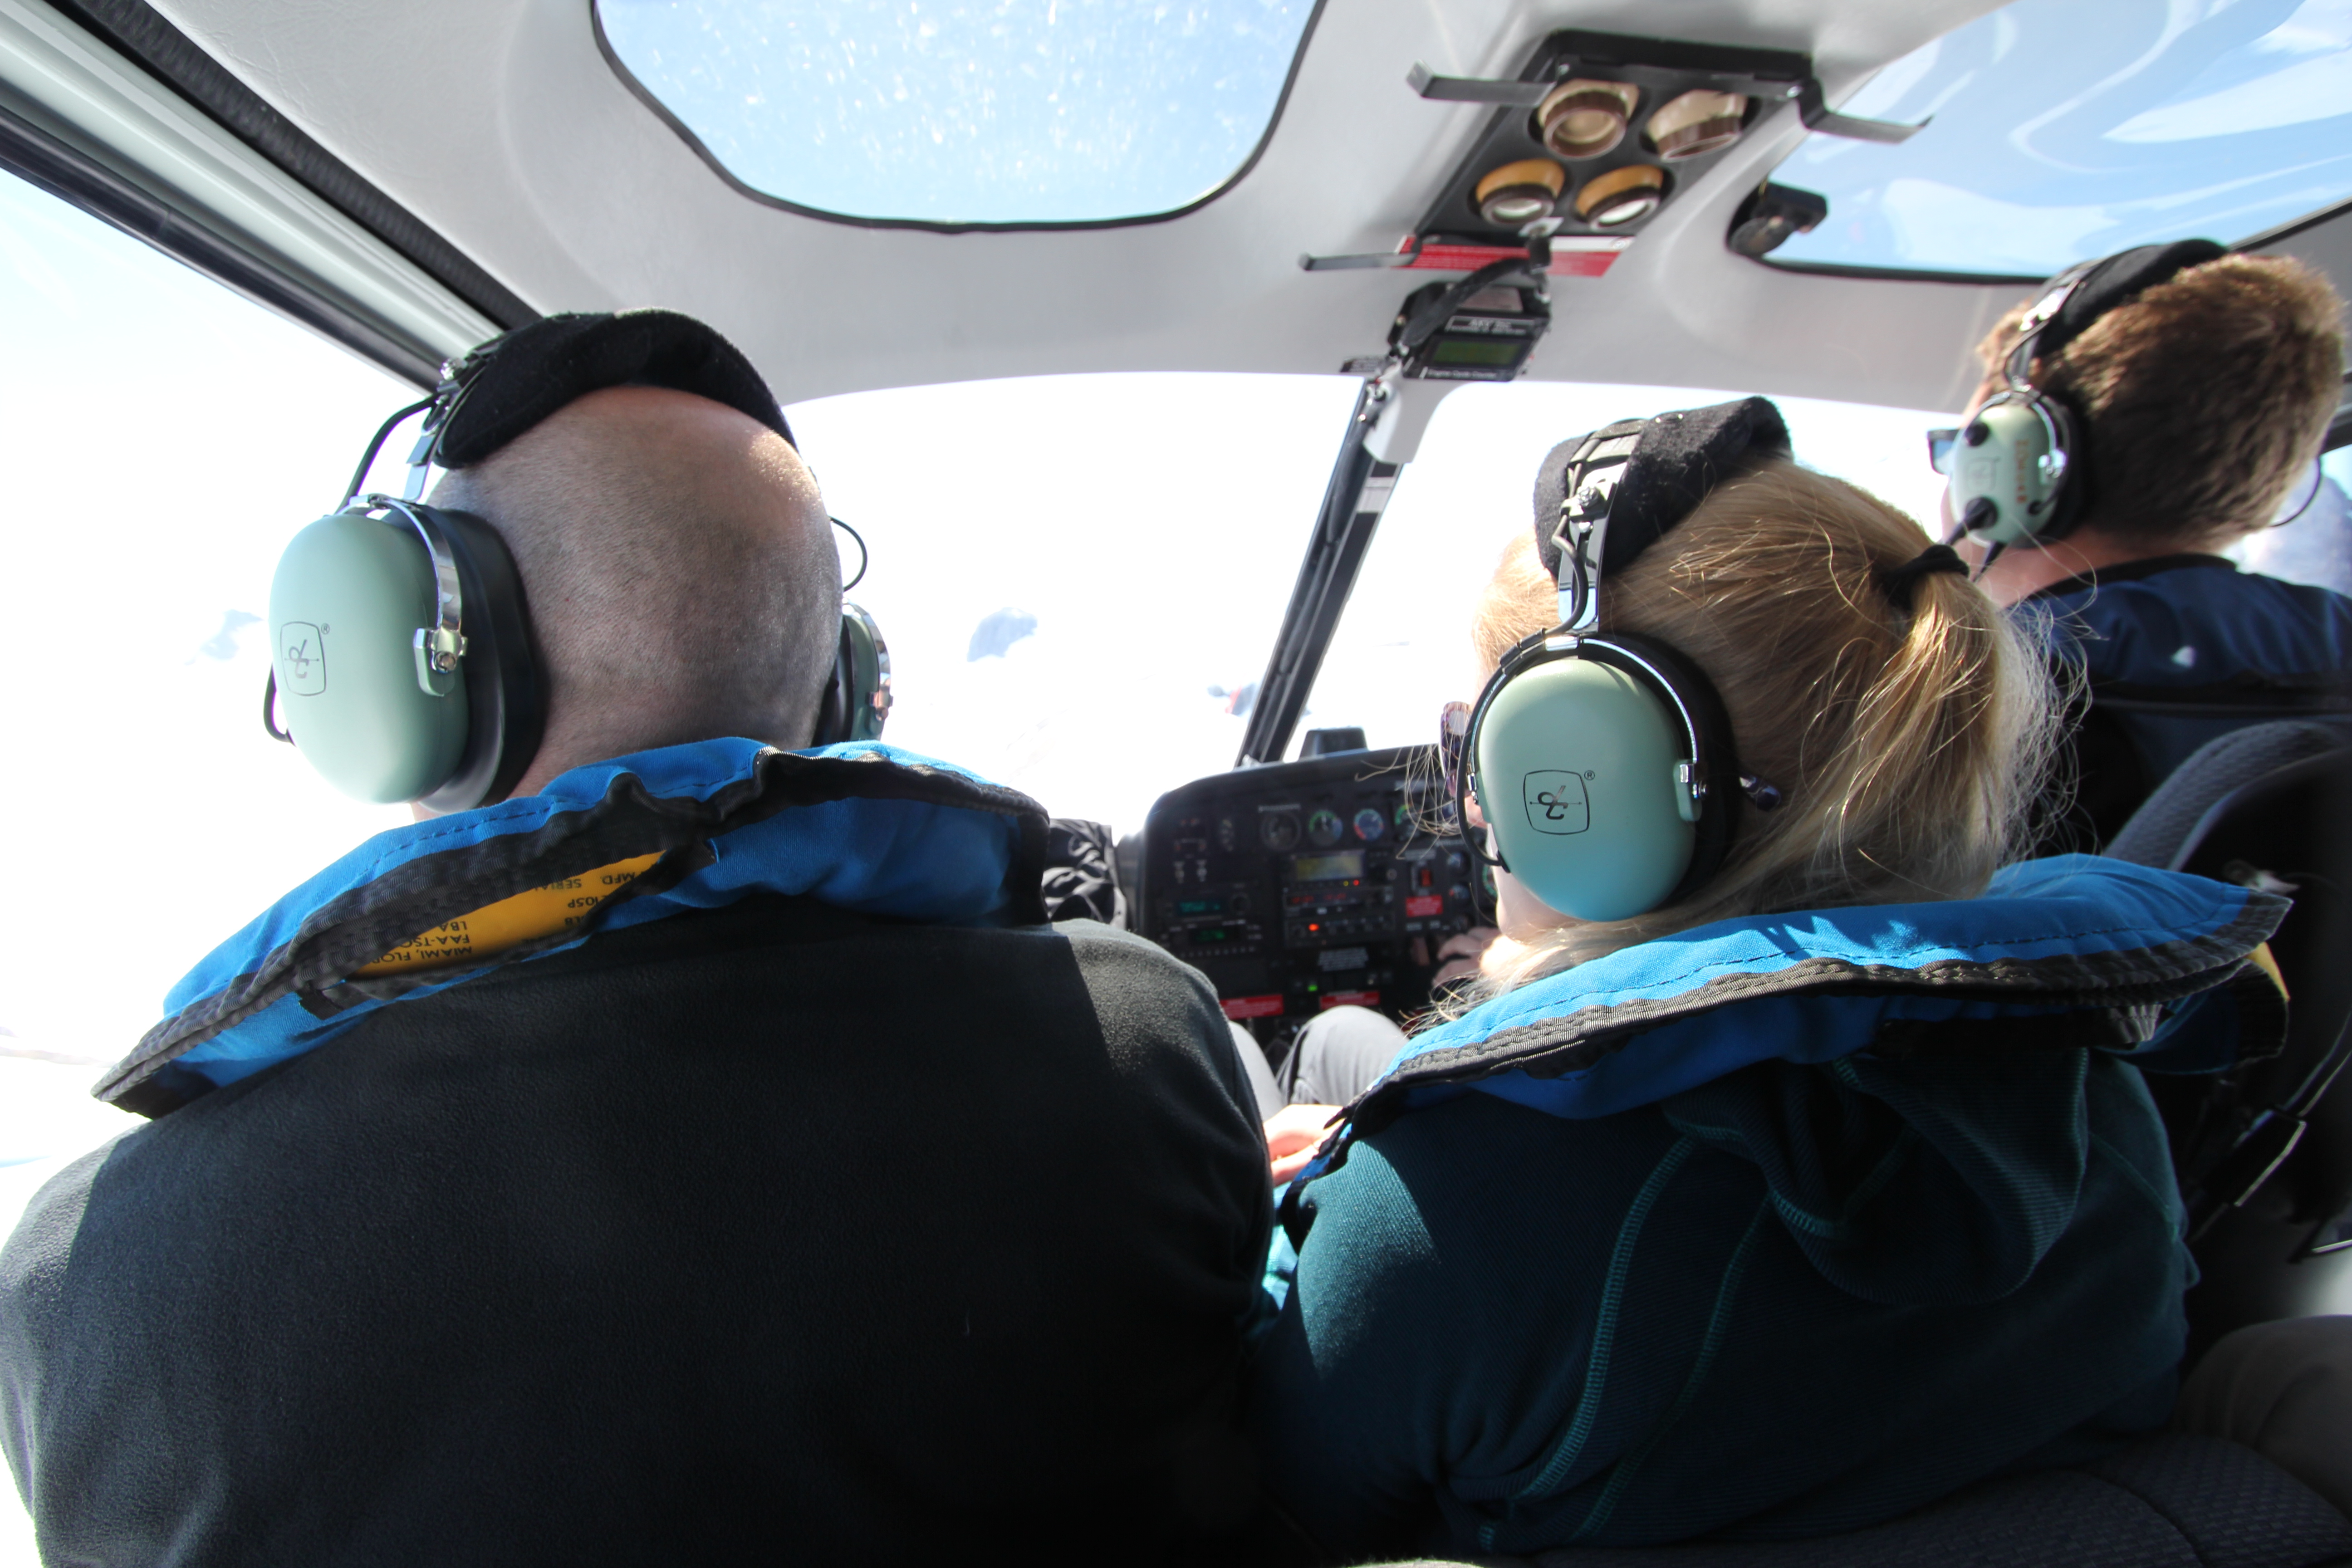 The pilot will allocate the exact seating arrangements for passengers based on a determination of weight and balance, so you fly in and fly out in the same seating position. You will be provided with flight headsets on boarding.